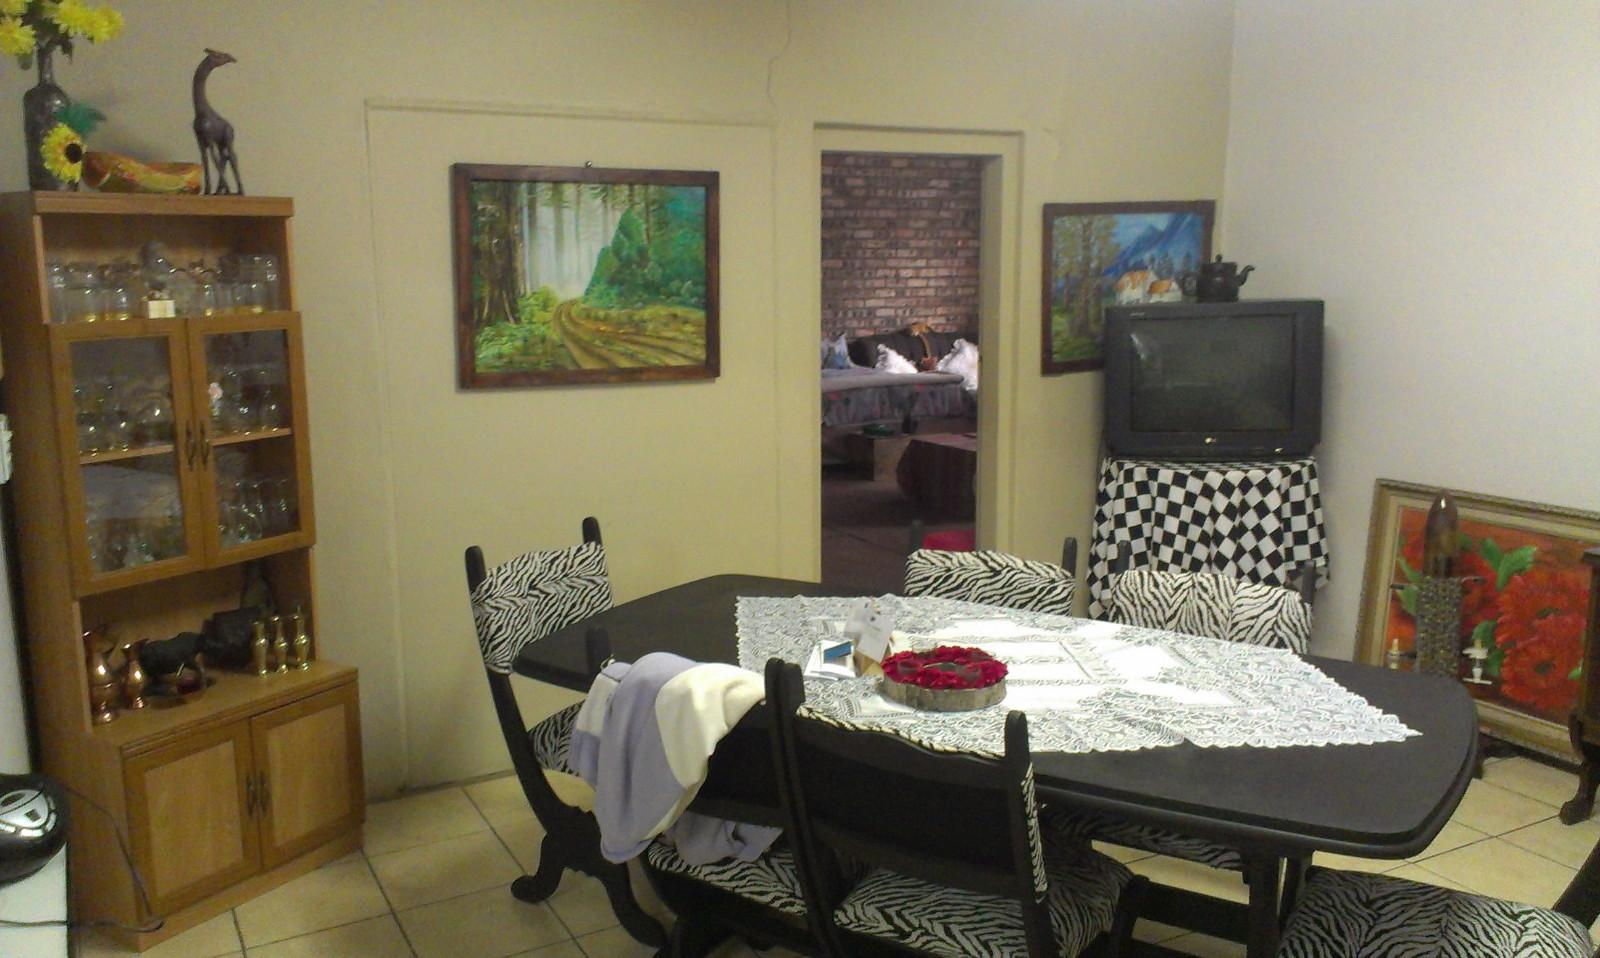 Vyfhoek property for sale. Ref No: 13350093. Picture no 15